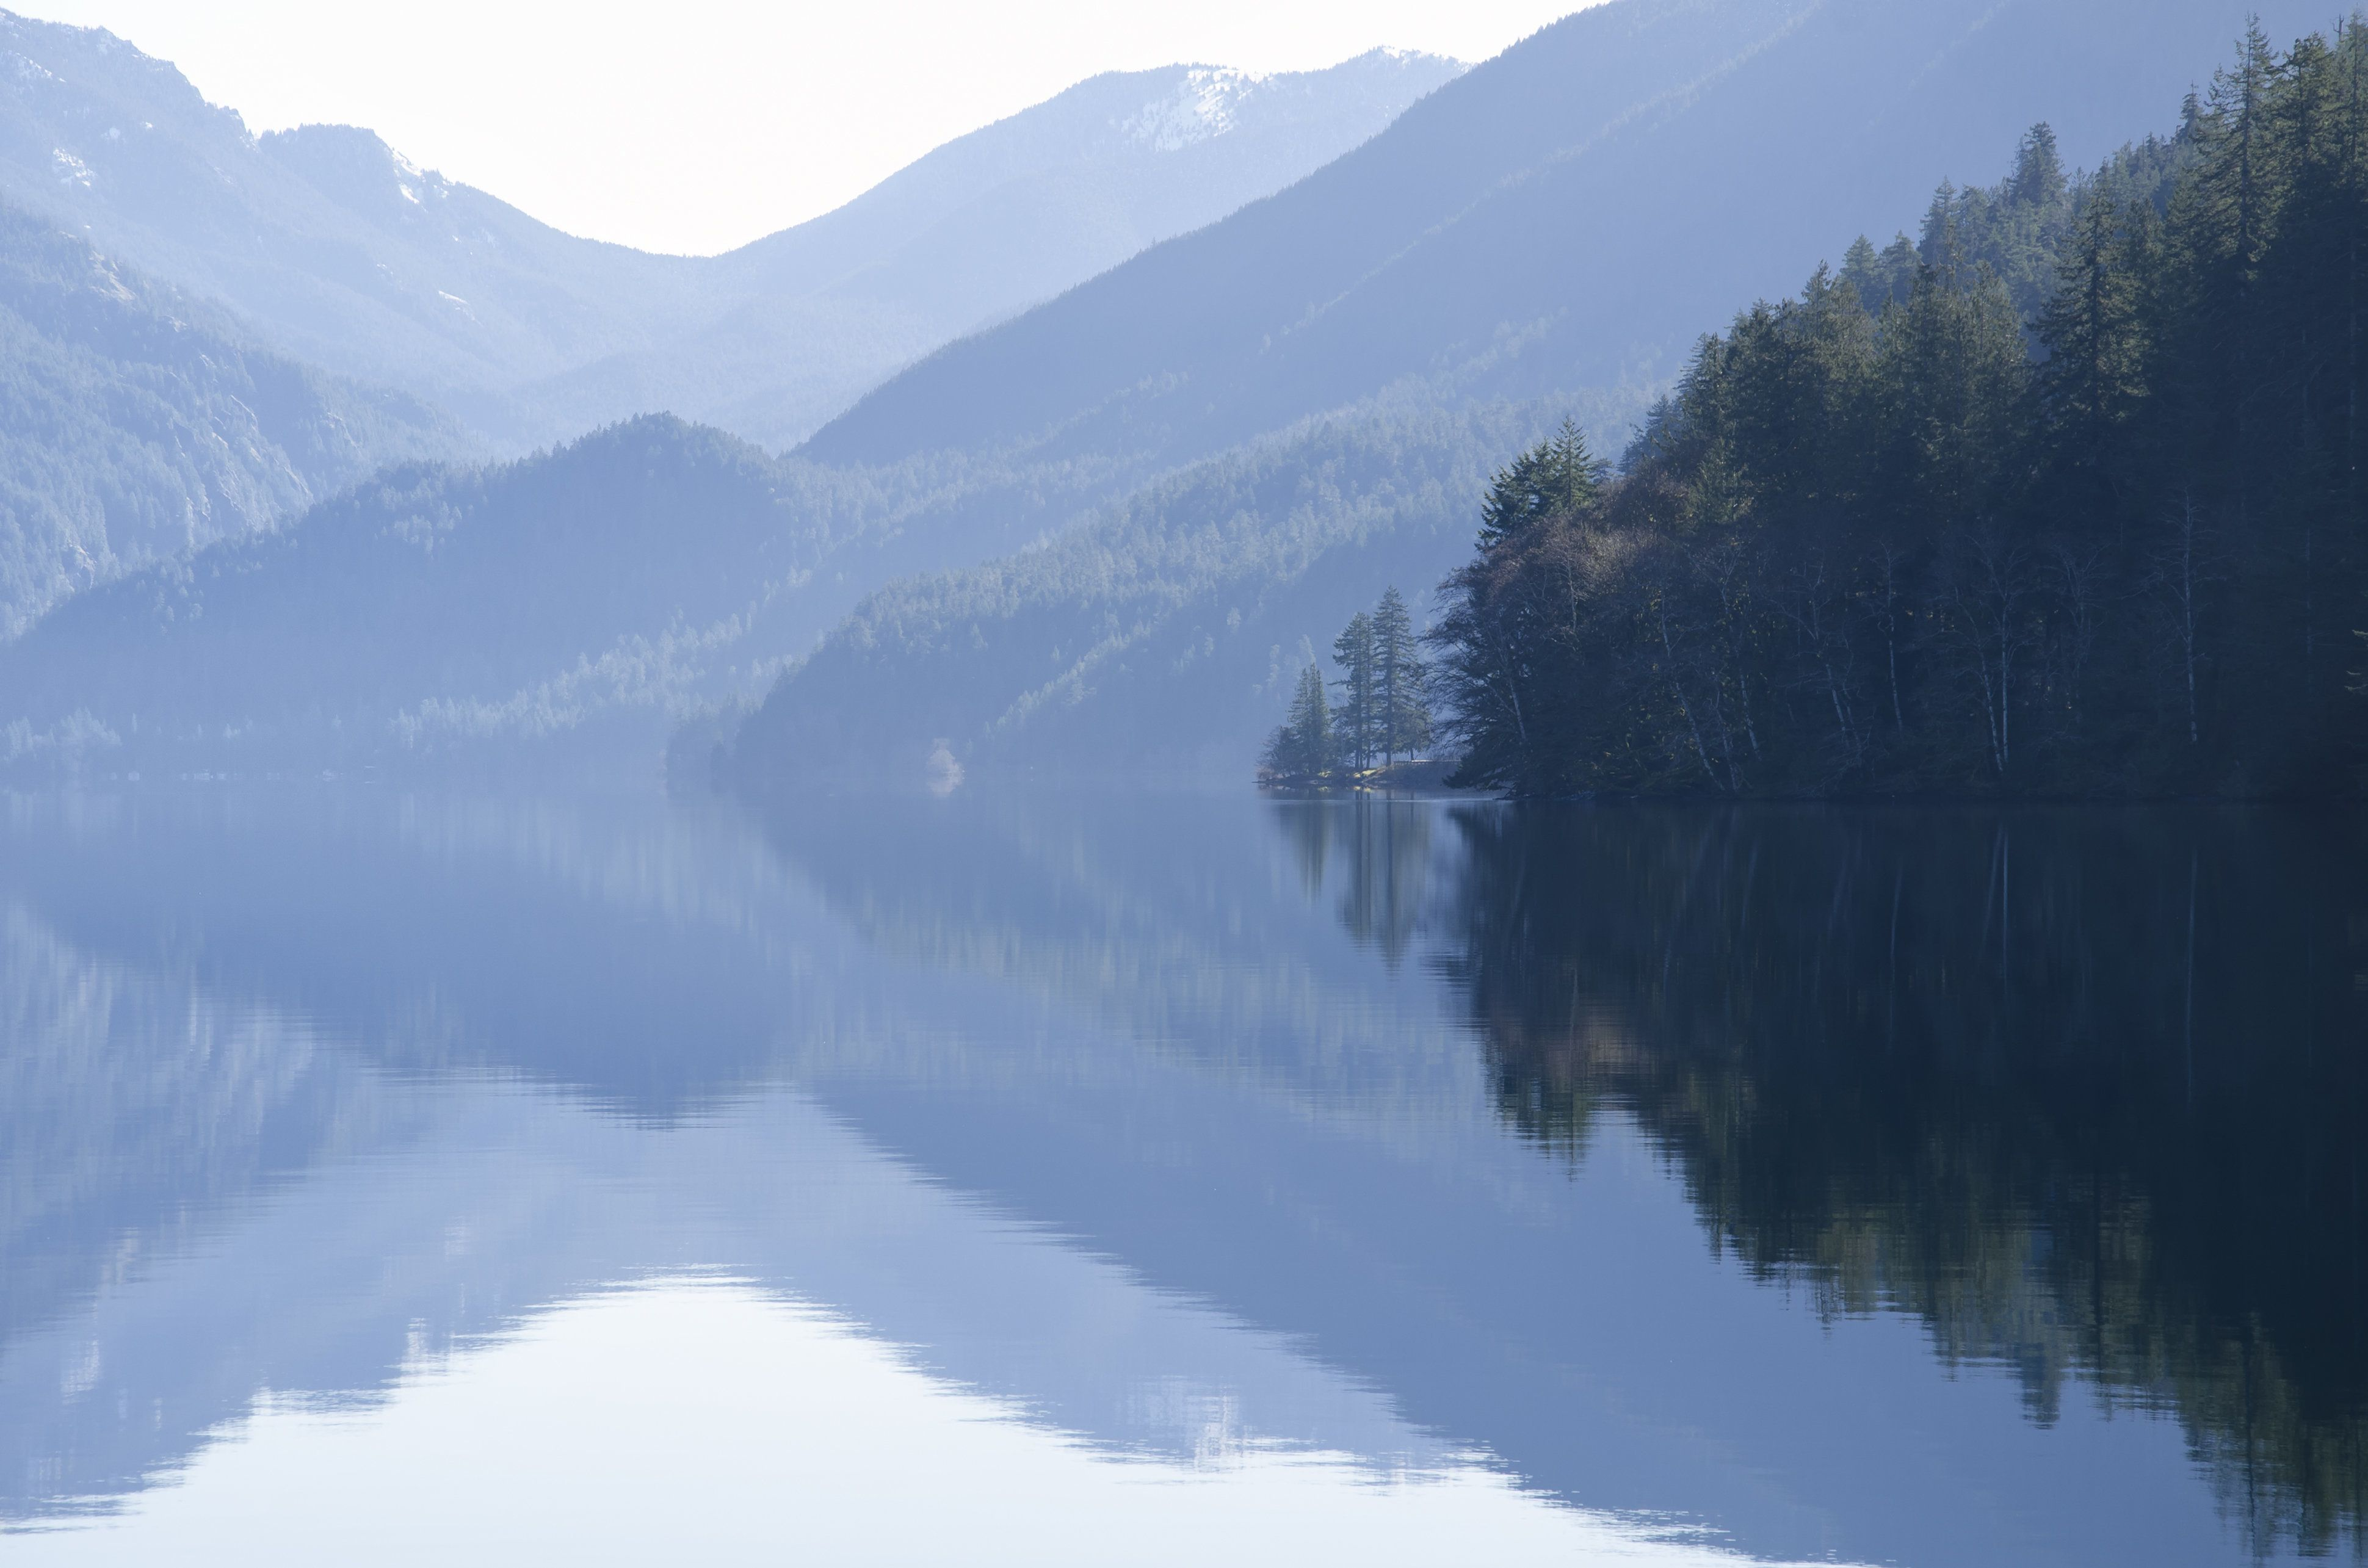 Mountains reflected in calm lake